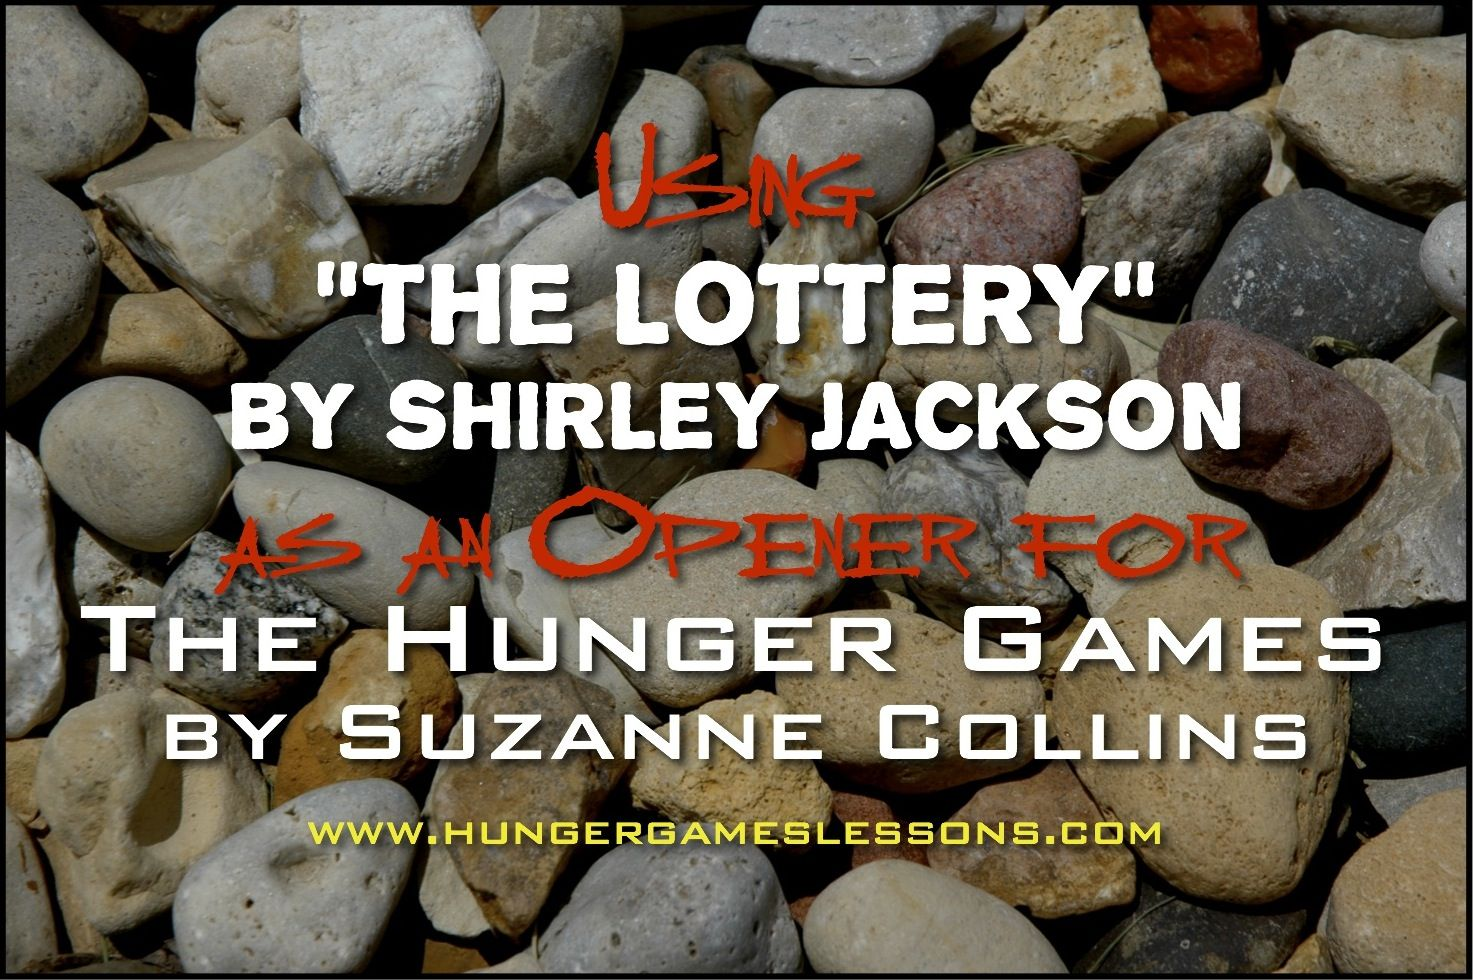 Introducing The The Hunger Games With The Lottery